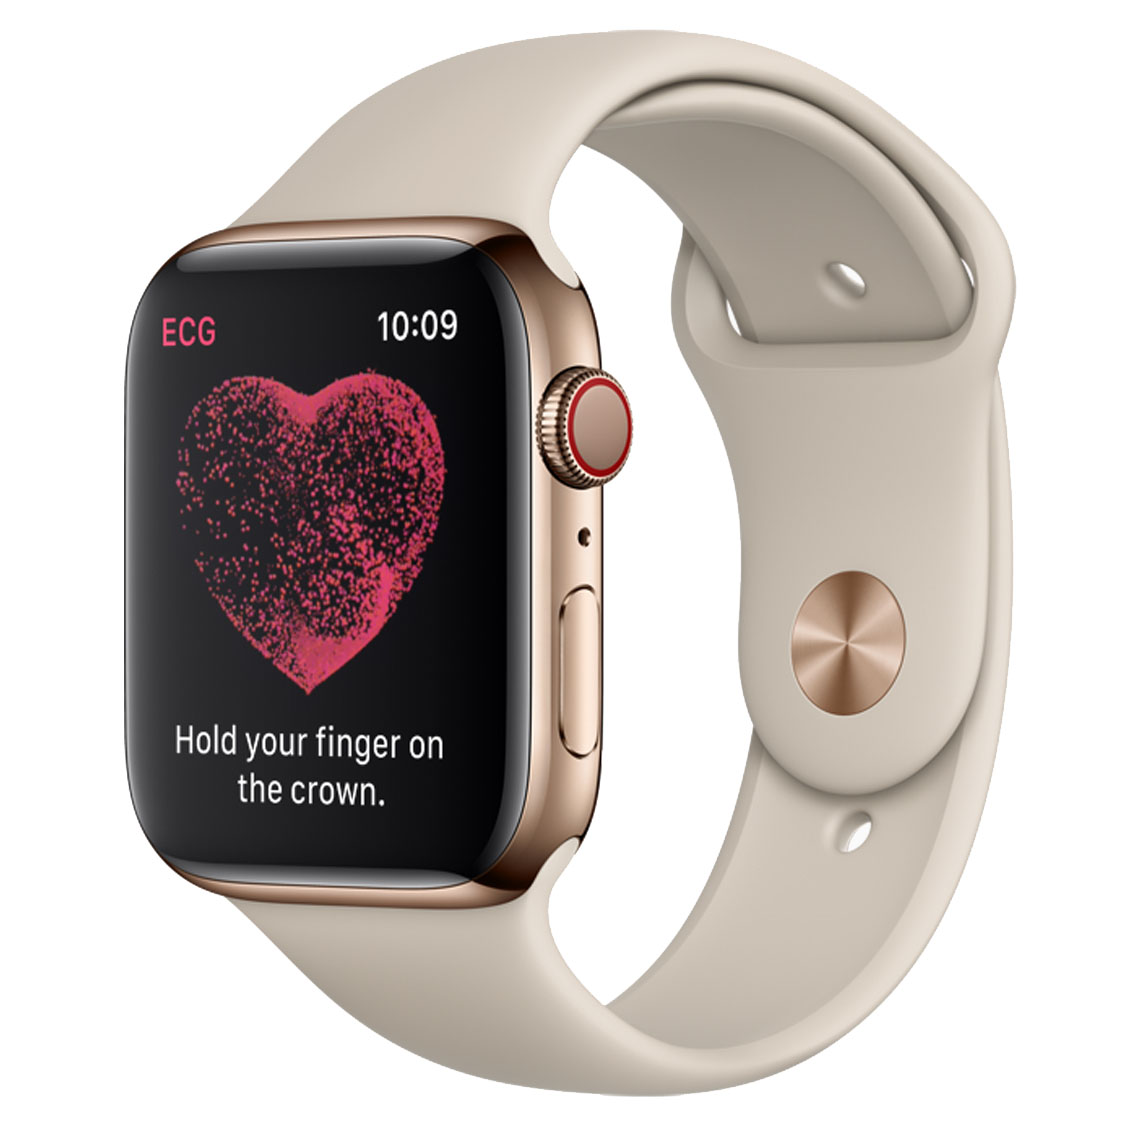 https://www.macfreak.nl/modules/news/images/zArt.Apple-Watch-Series4_ECG-HeartRate_09122018.jpg